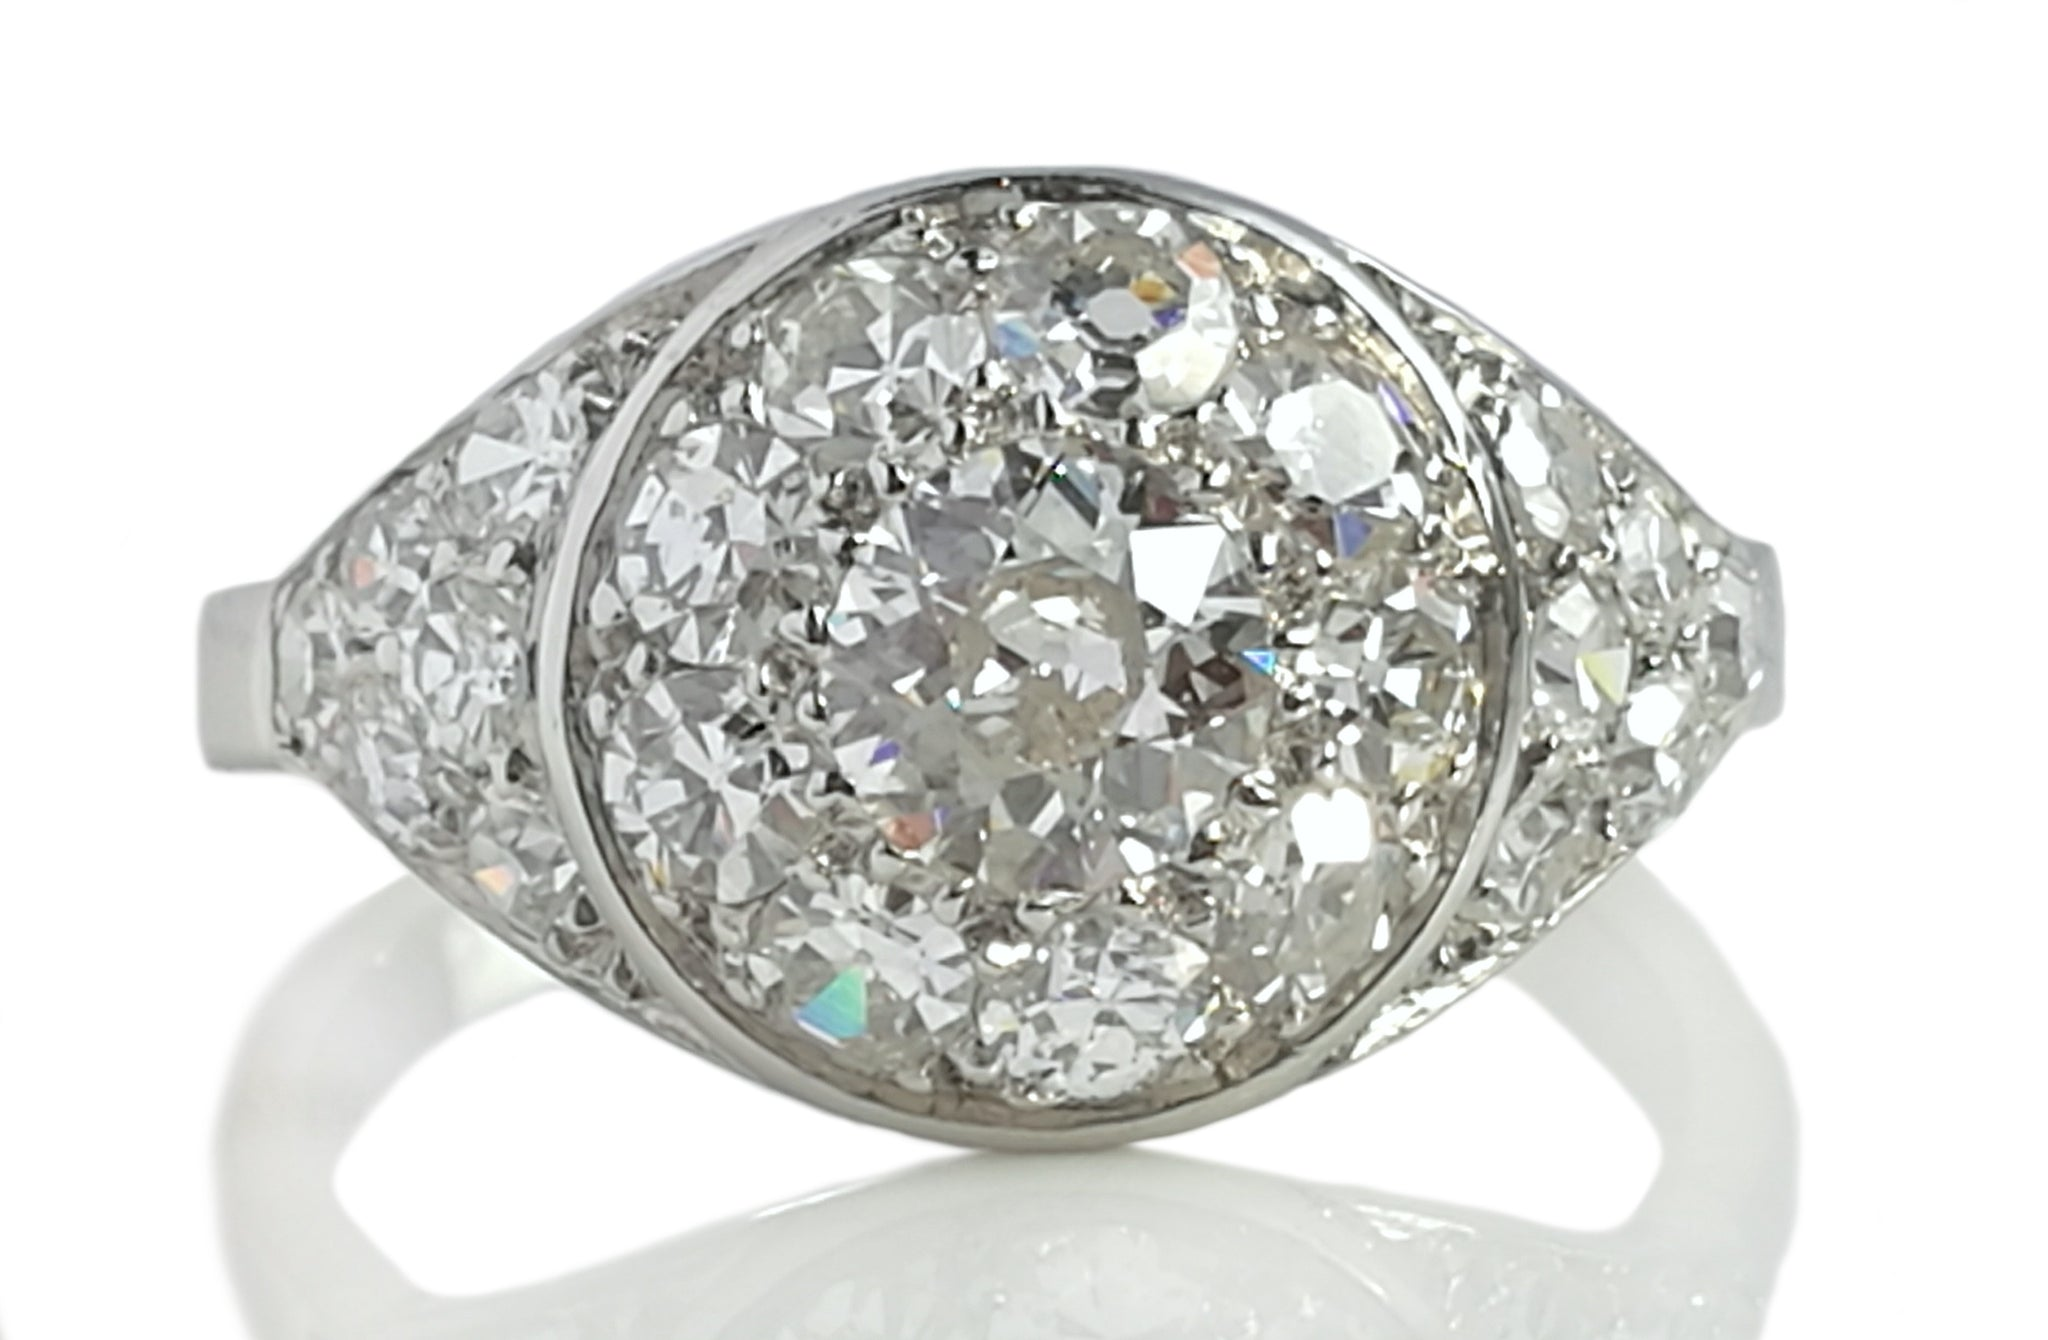 Antique Art Deco 1.77ct Old Cut Diamond & Platinum Bombe Engagement Ring